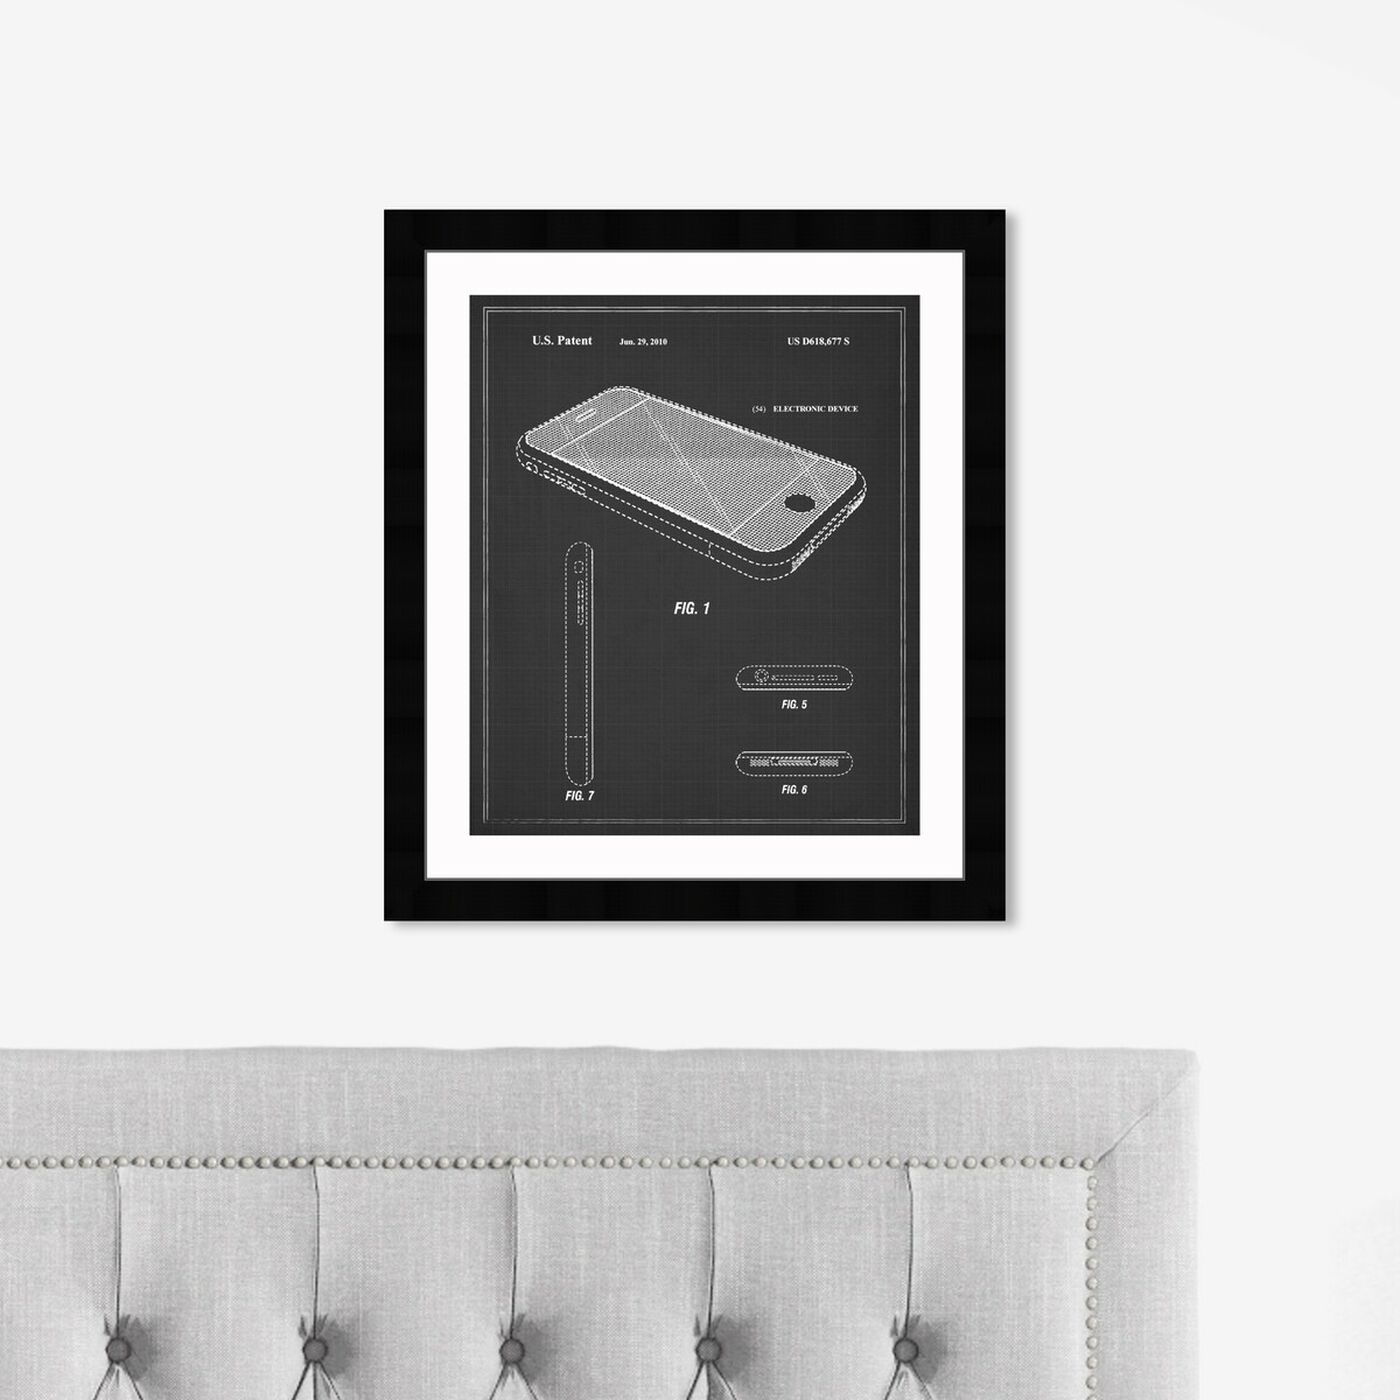 Hanging view of Apple Iphone, 2010 - Noir featuring symbols and objects and workspace art.